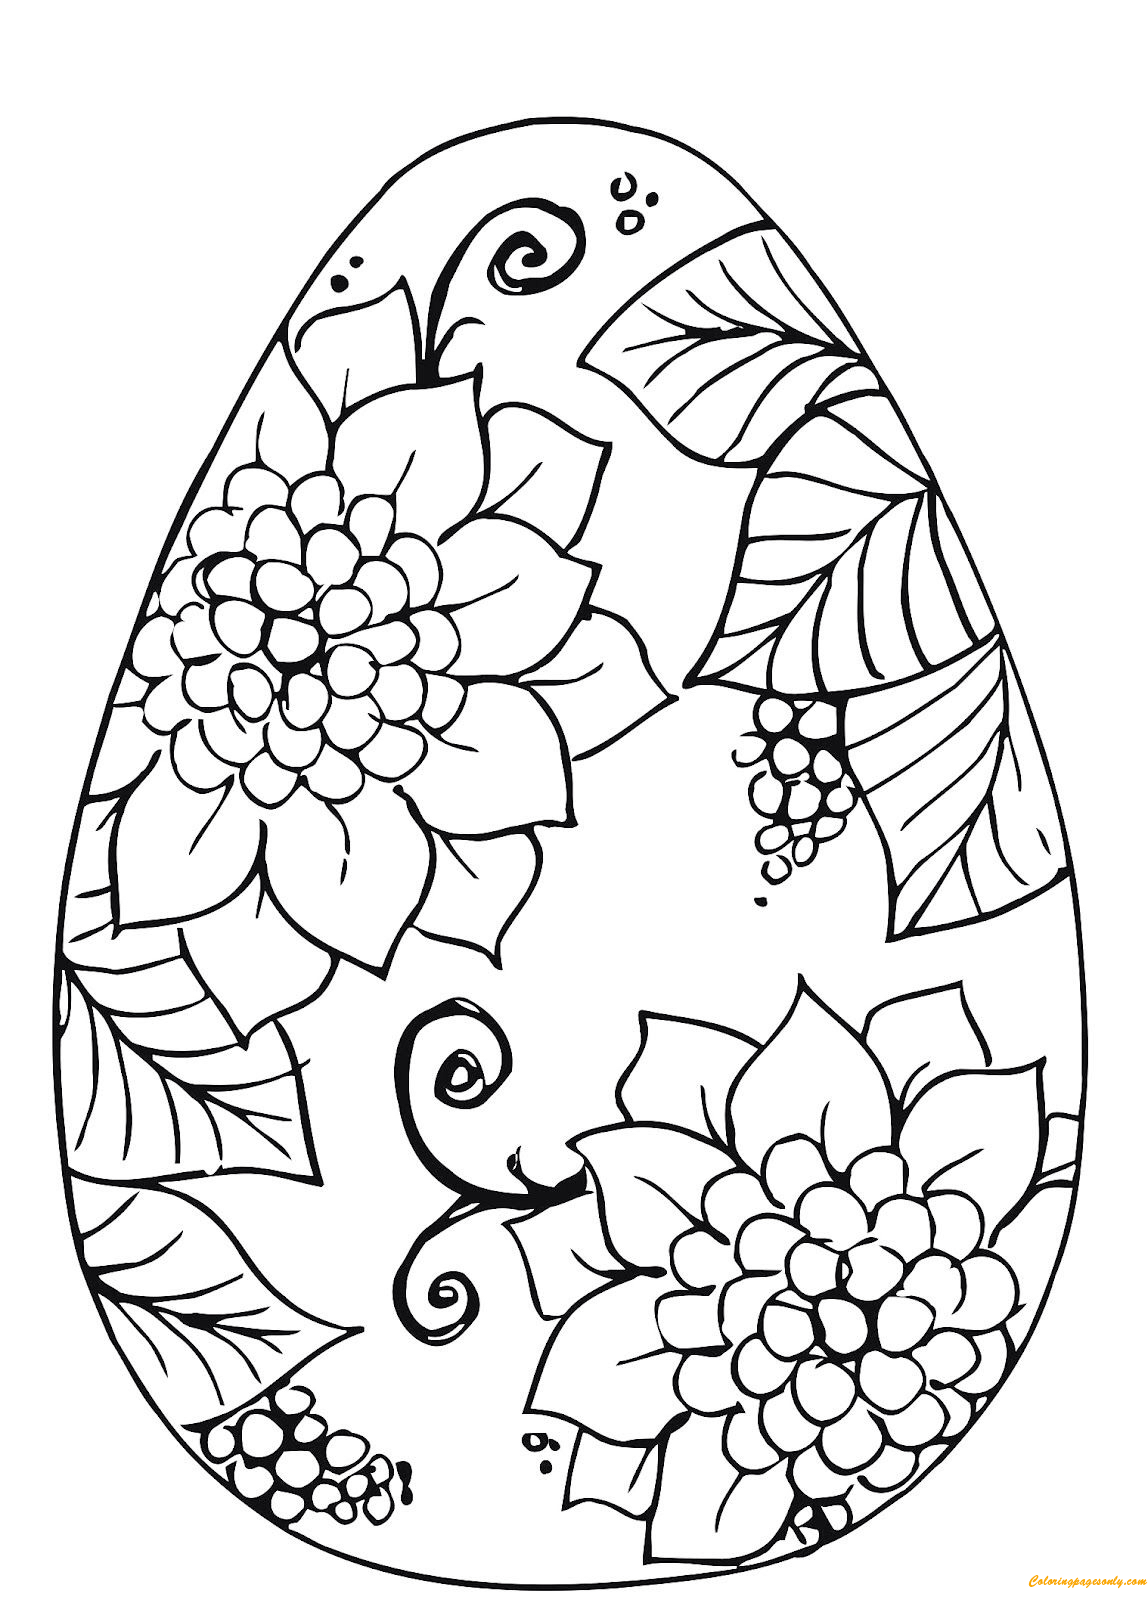 Easter Egg Flower Patterns Coloring Page